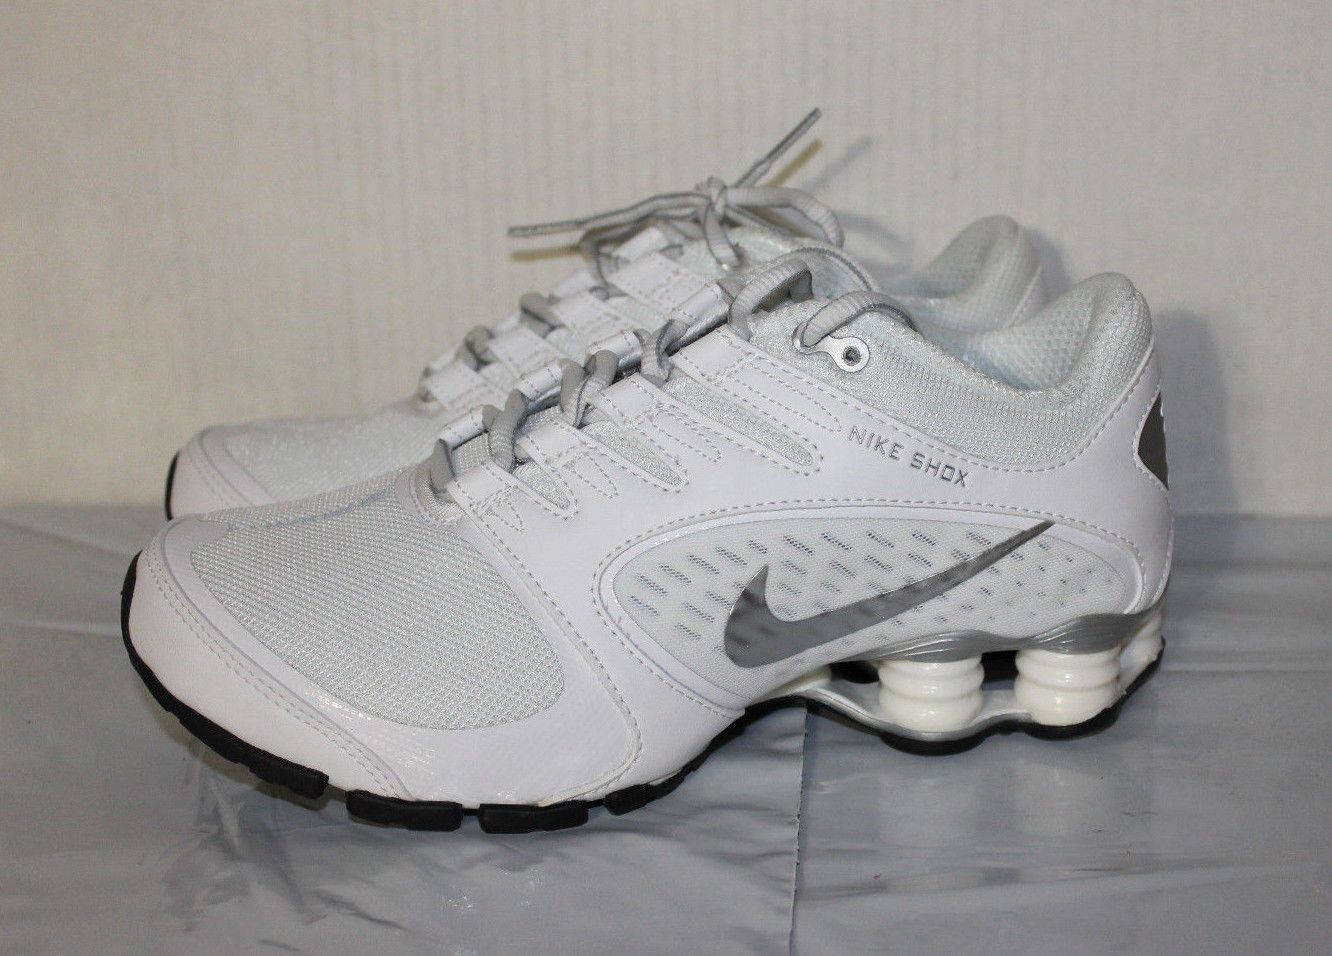 678632 Shoes Vaeda Shox White Running Silver Women's Nike q4jLc3AR5